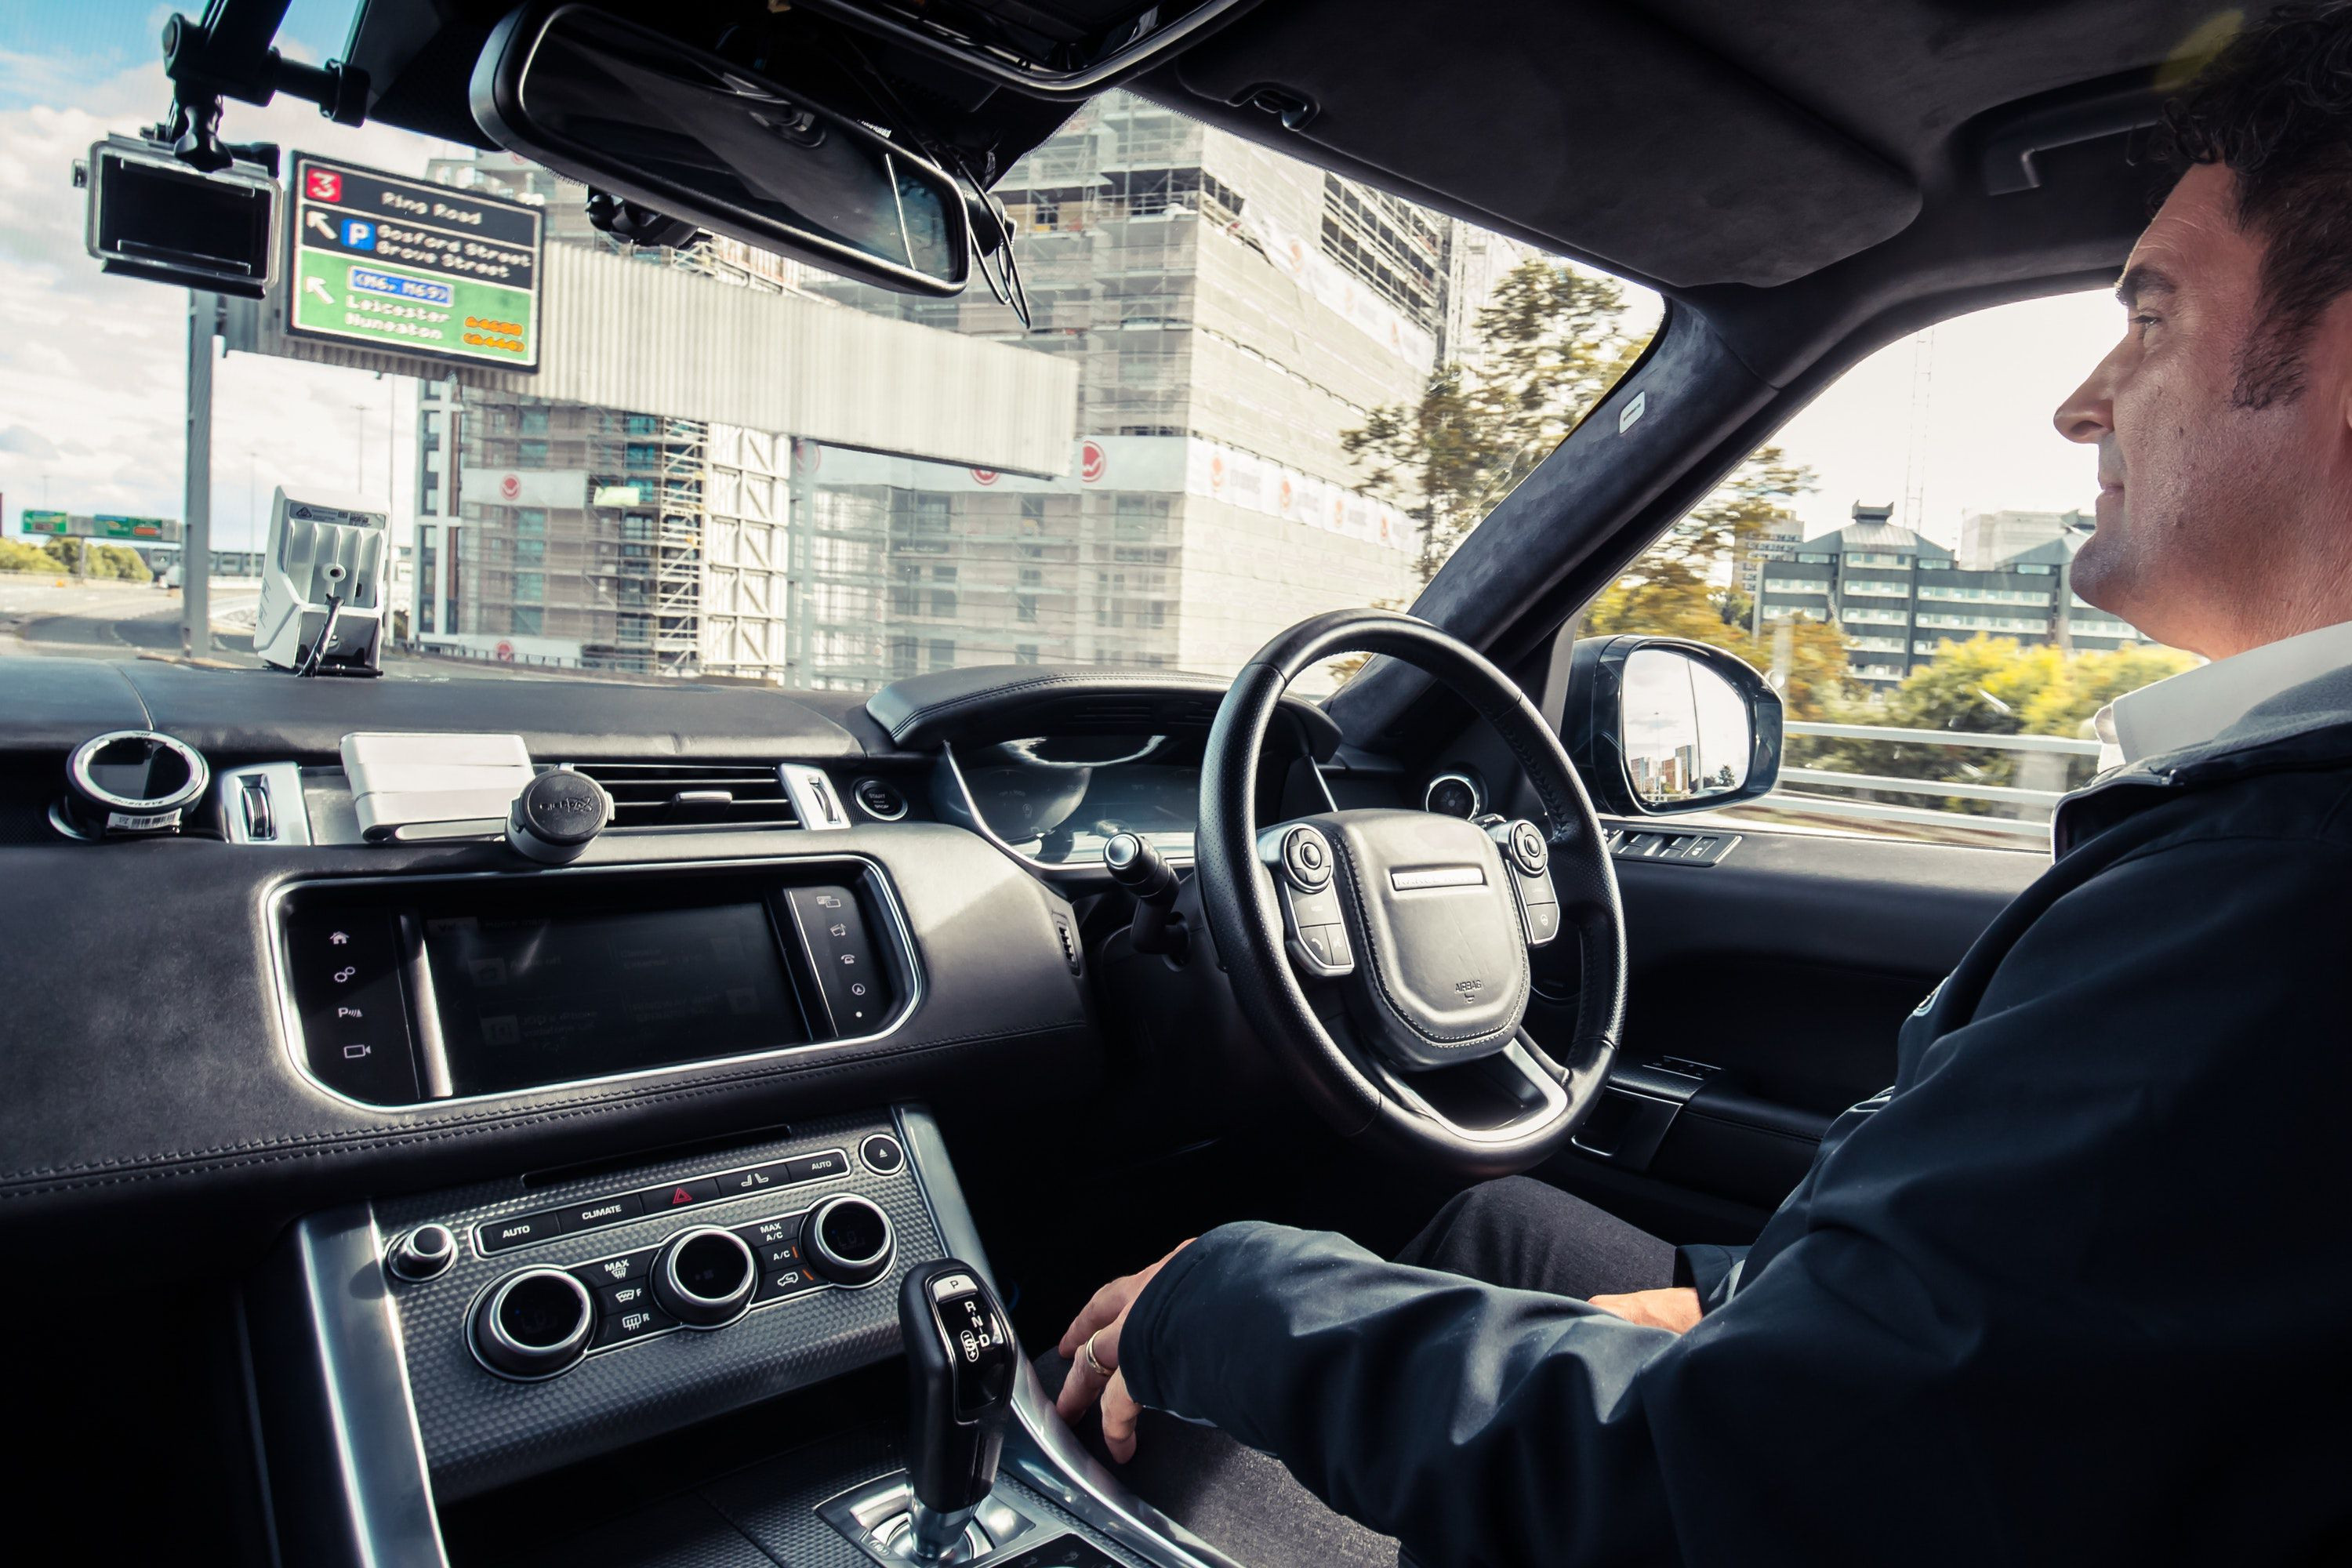 inside the self driving Range Rover